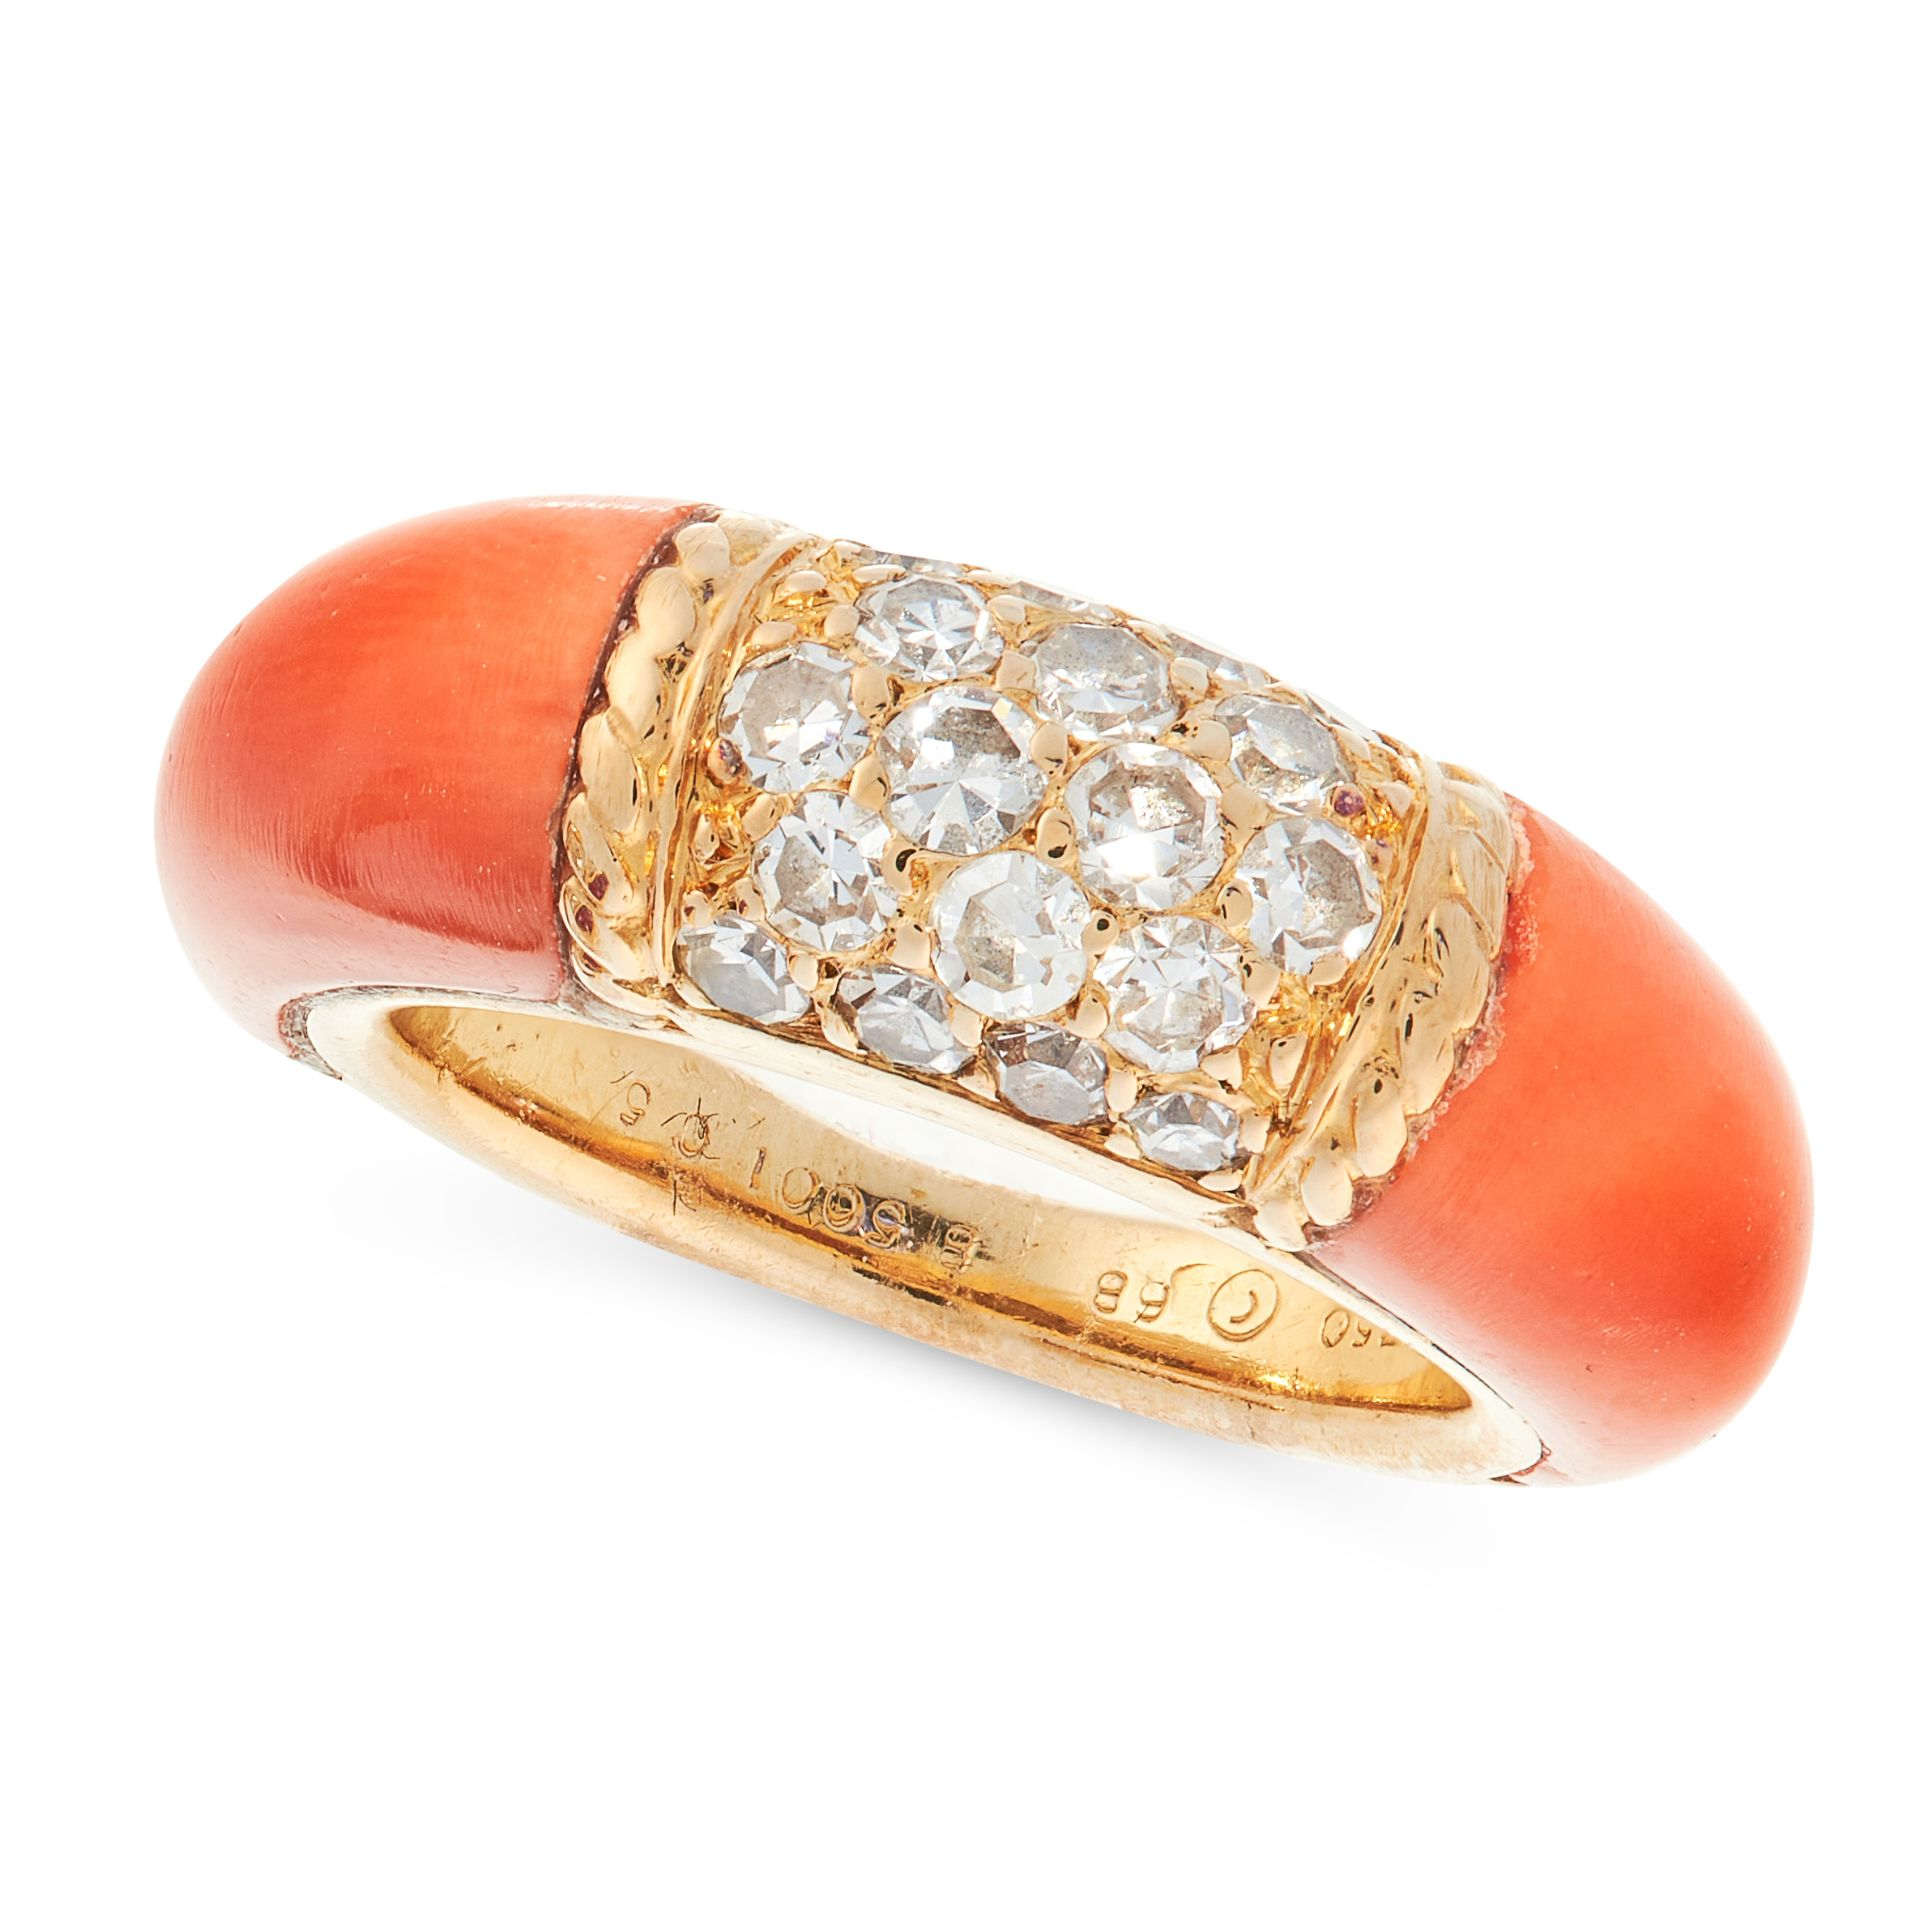 A VINTAGE DIAMOND AND CORAL PHILIPPINES DRESS RING, VAN CLEEF & ARPELS in 18ct yellow gold, set with